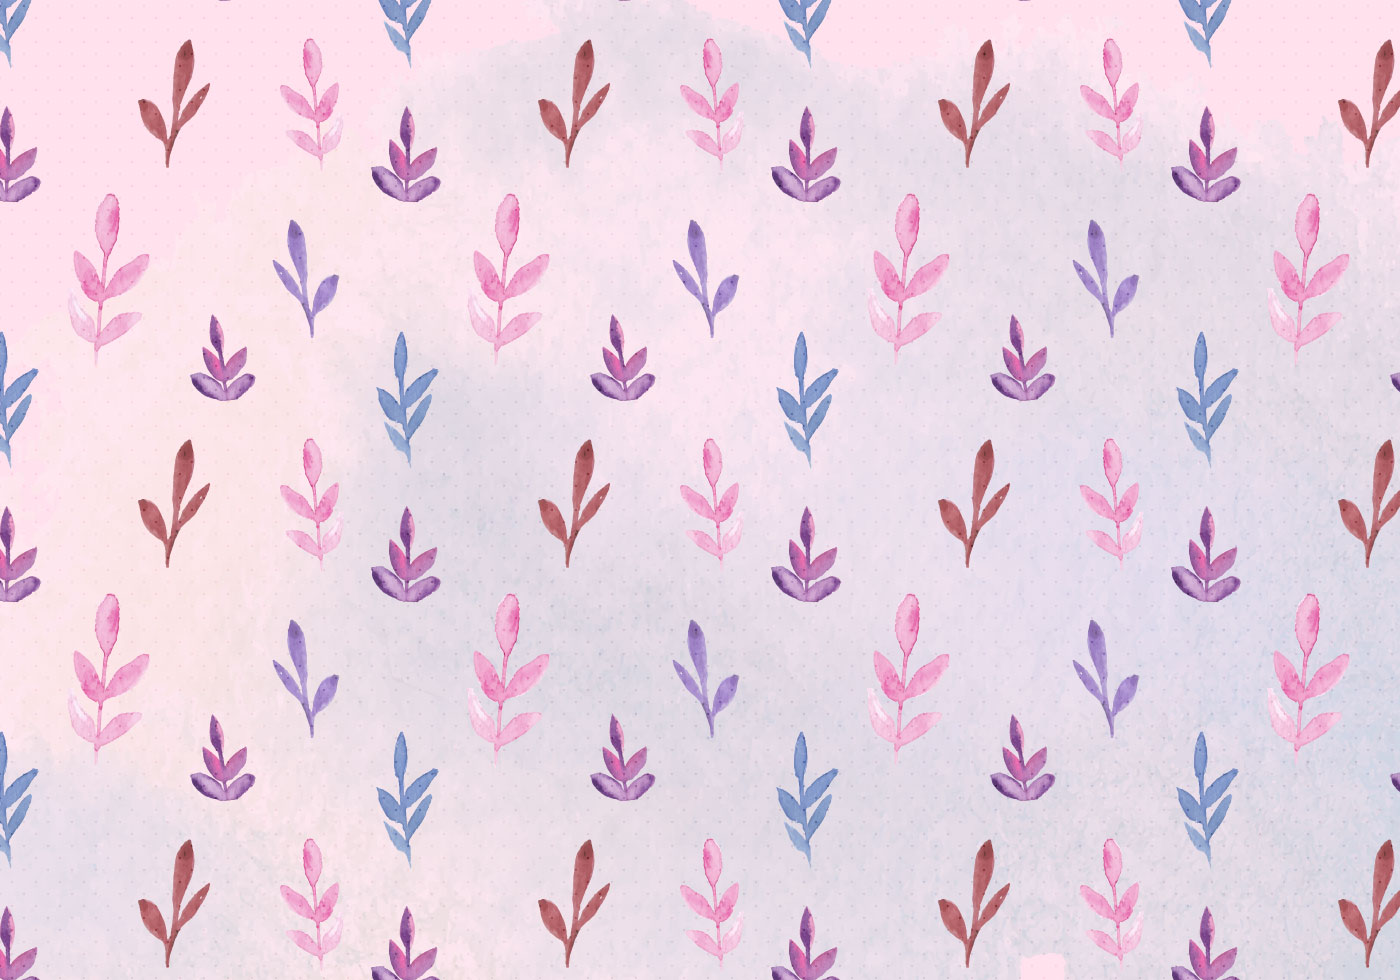 Free Vector Watercolor Leaves Pattern Download Free